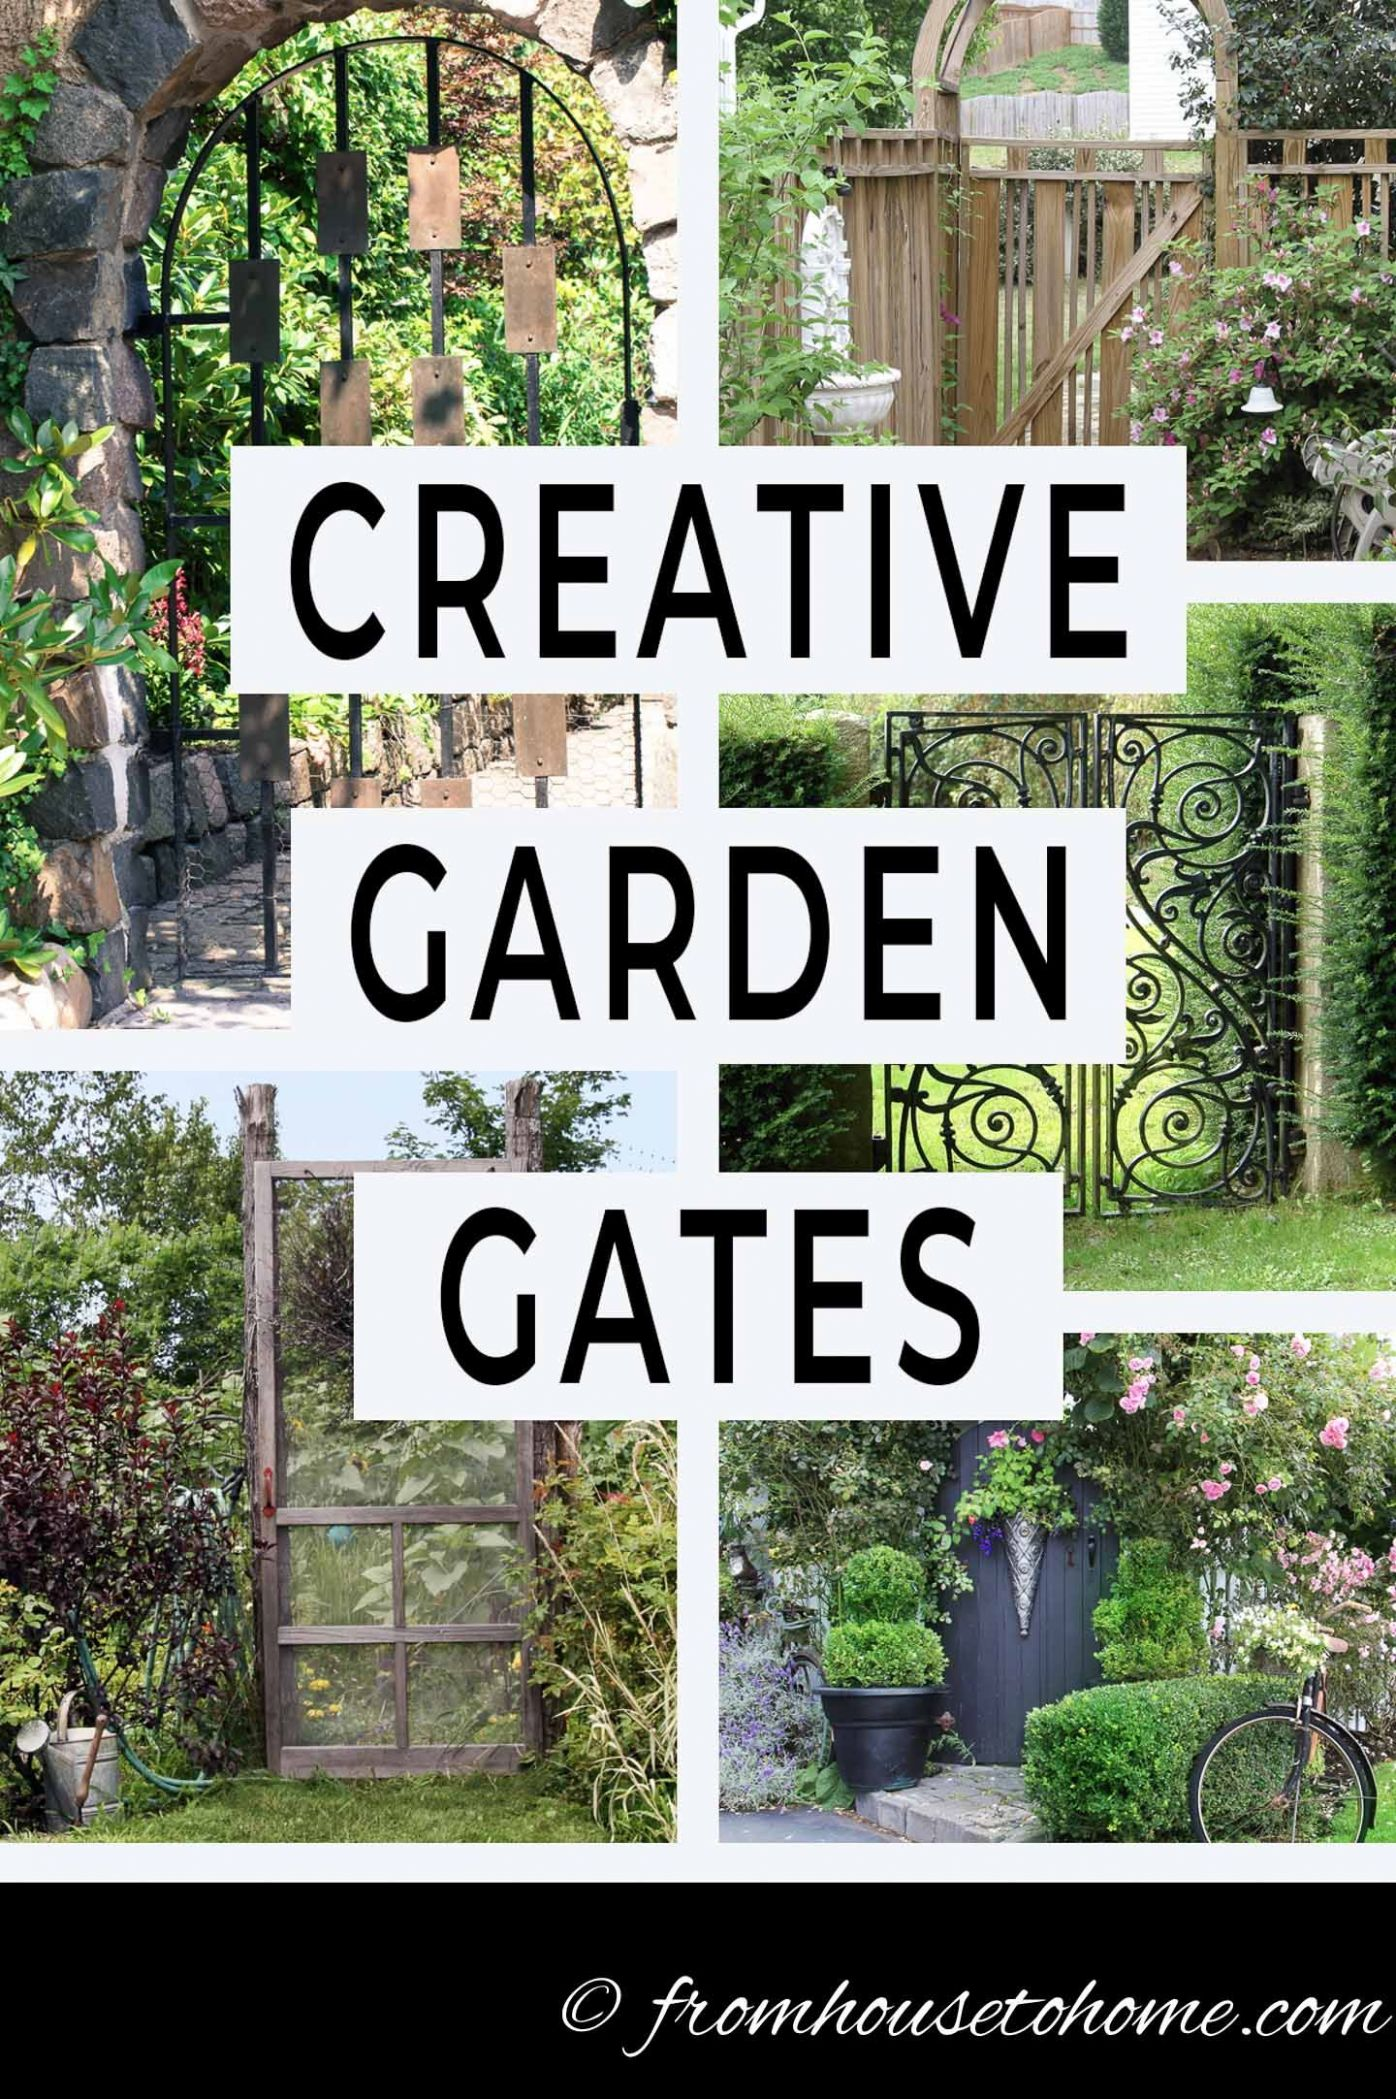 Creative Garden Gate Ideas For A Beautiful Backyard (With images ...